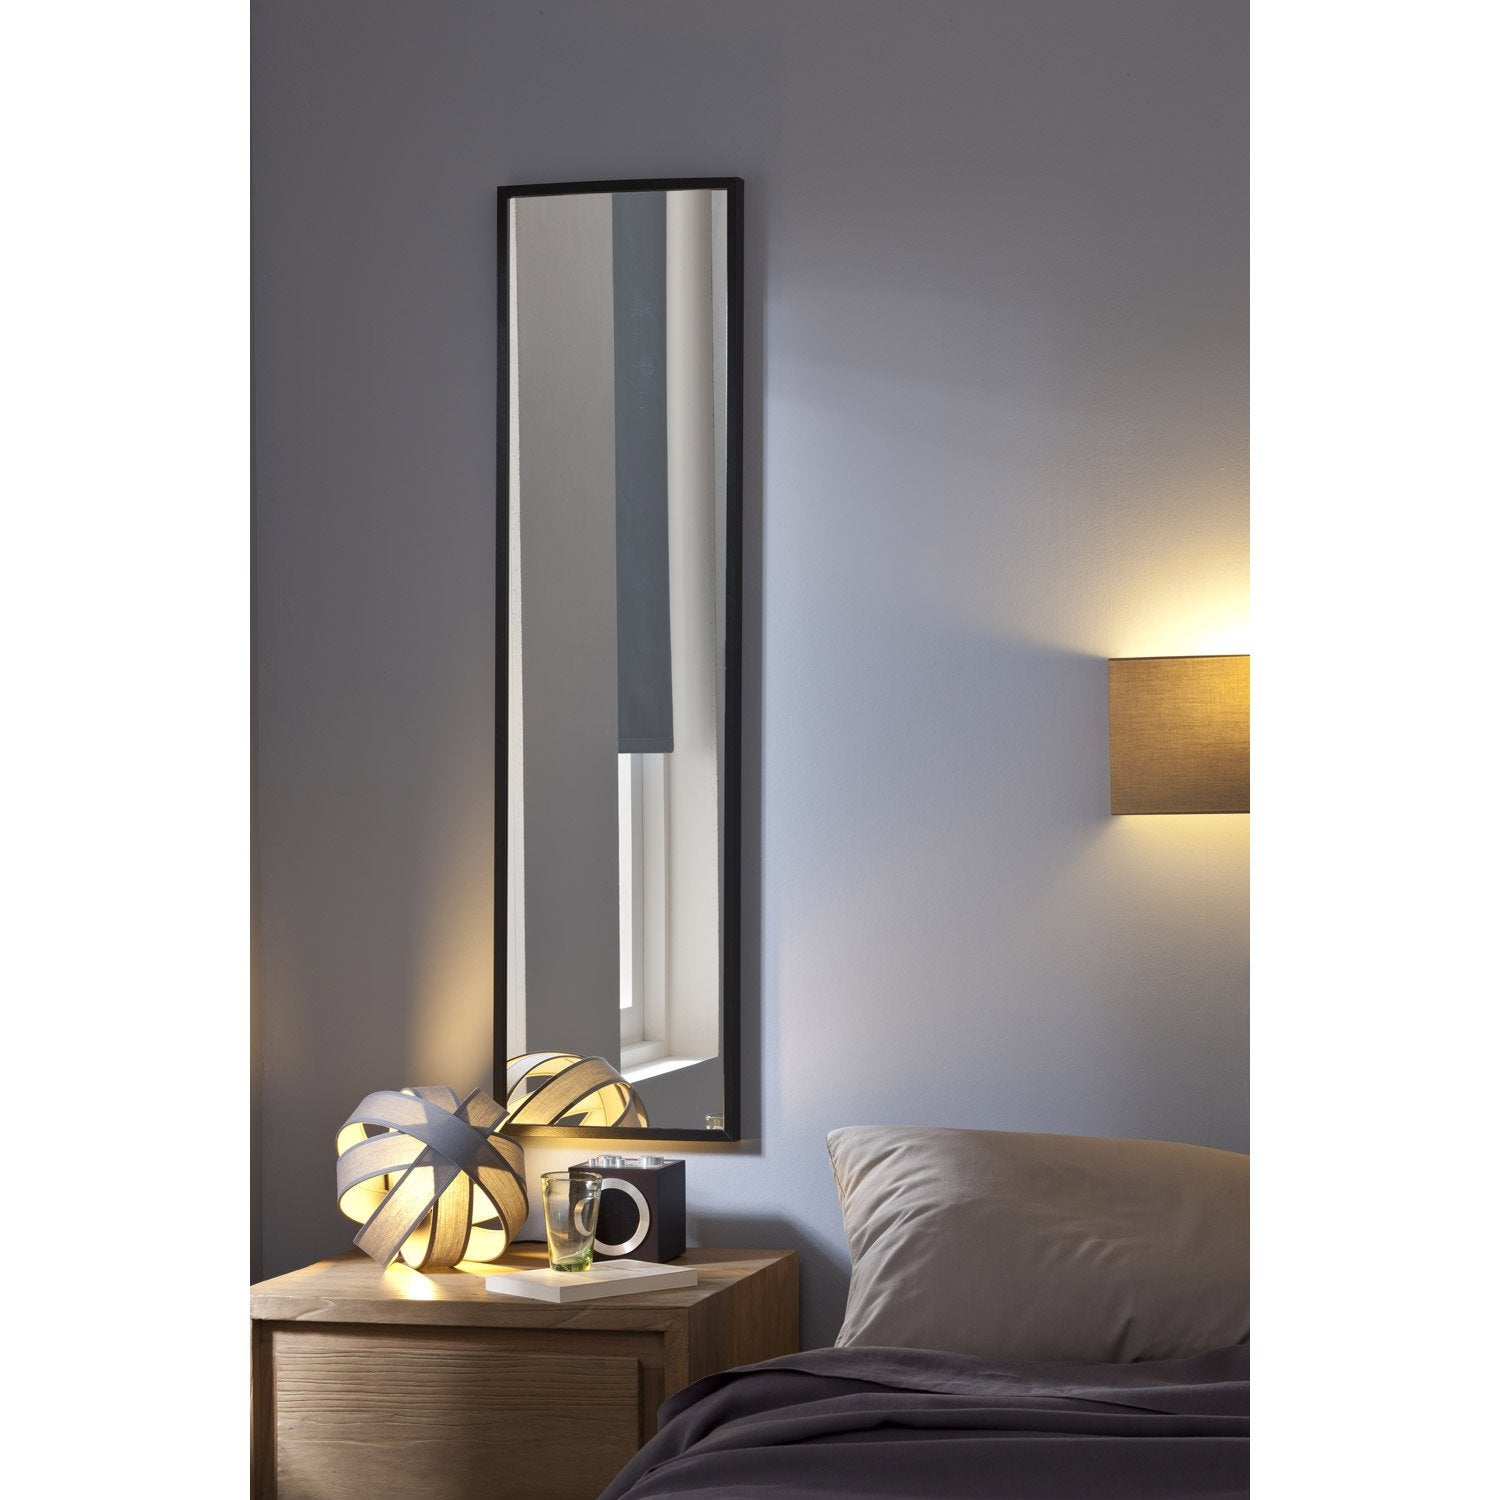 Miroir lario inspire argent x cm leroy merlin - Collection inspire leroy merlin ...